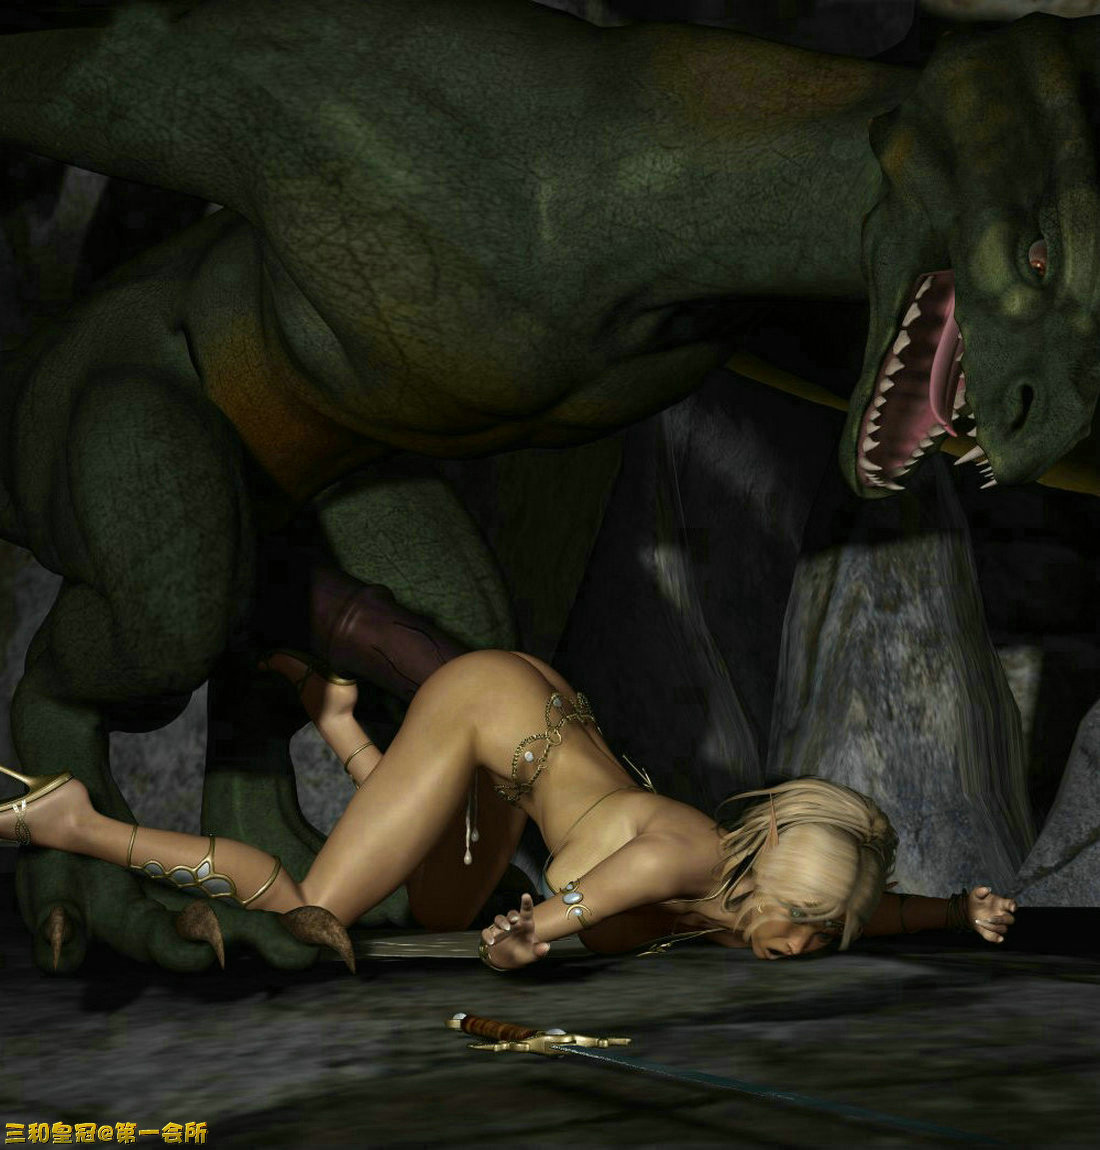 Dragon girls fuckin adult movies